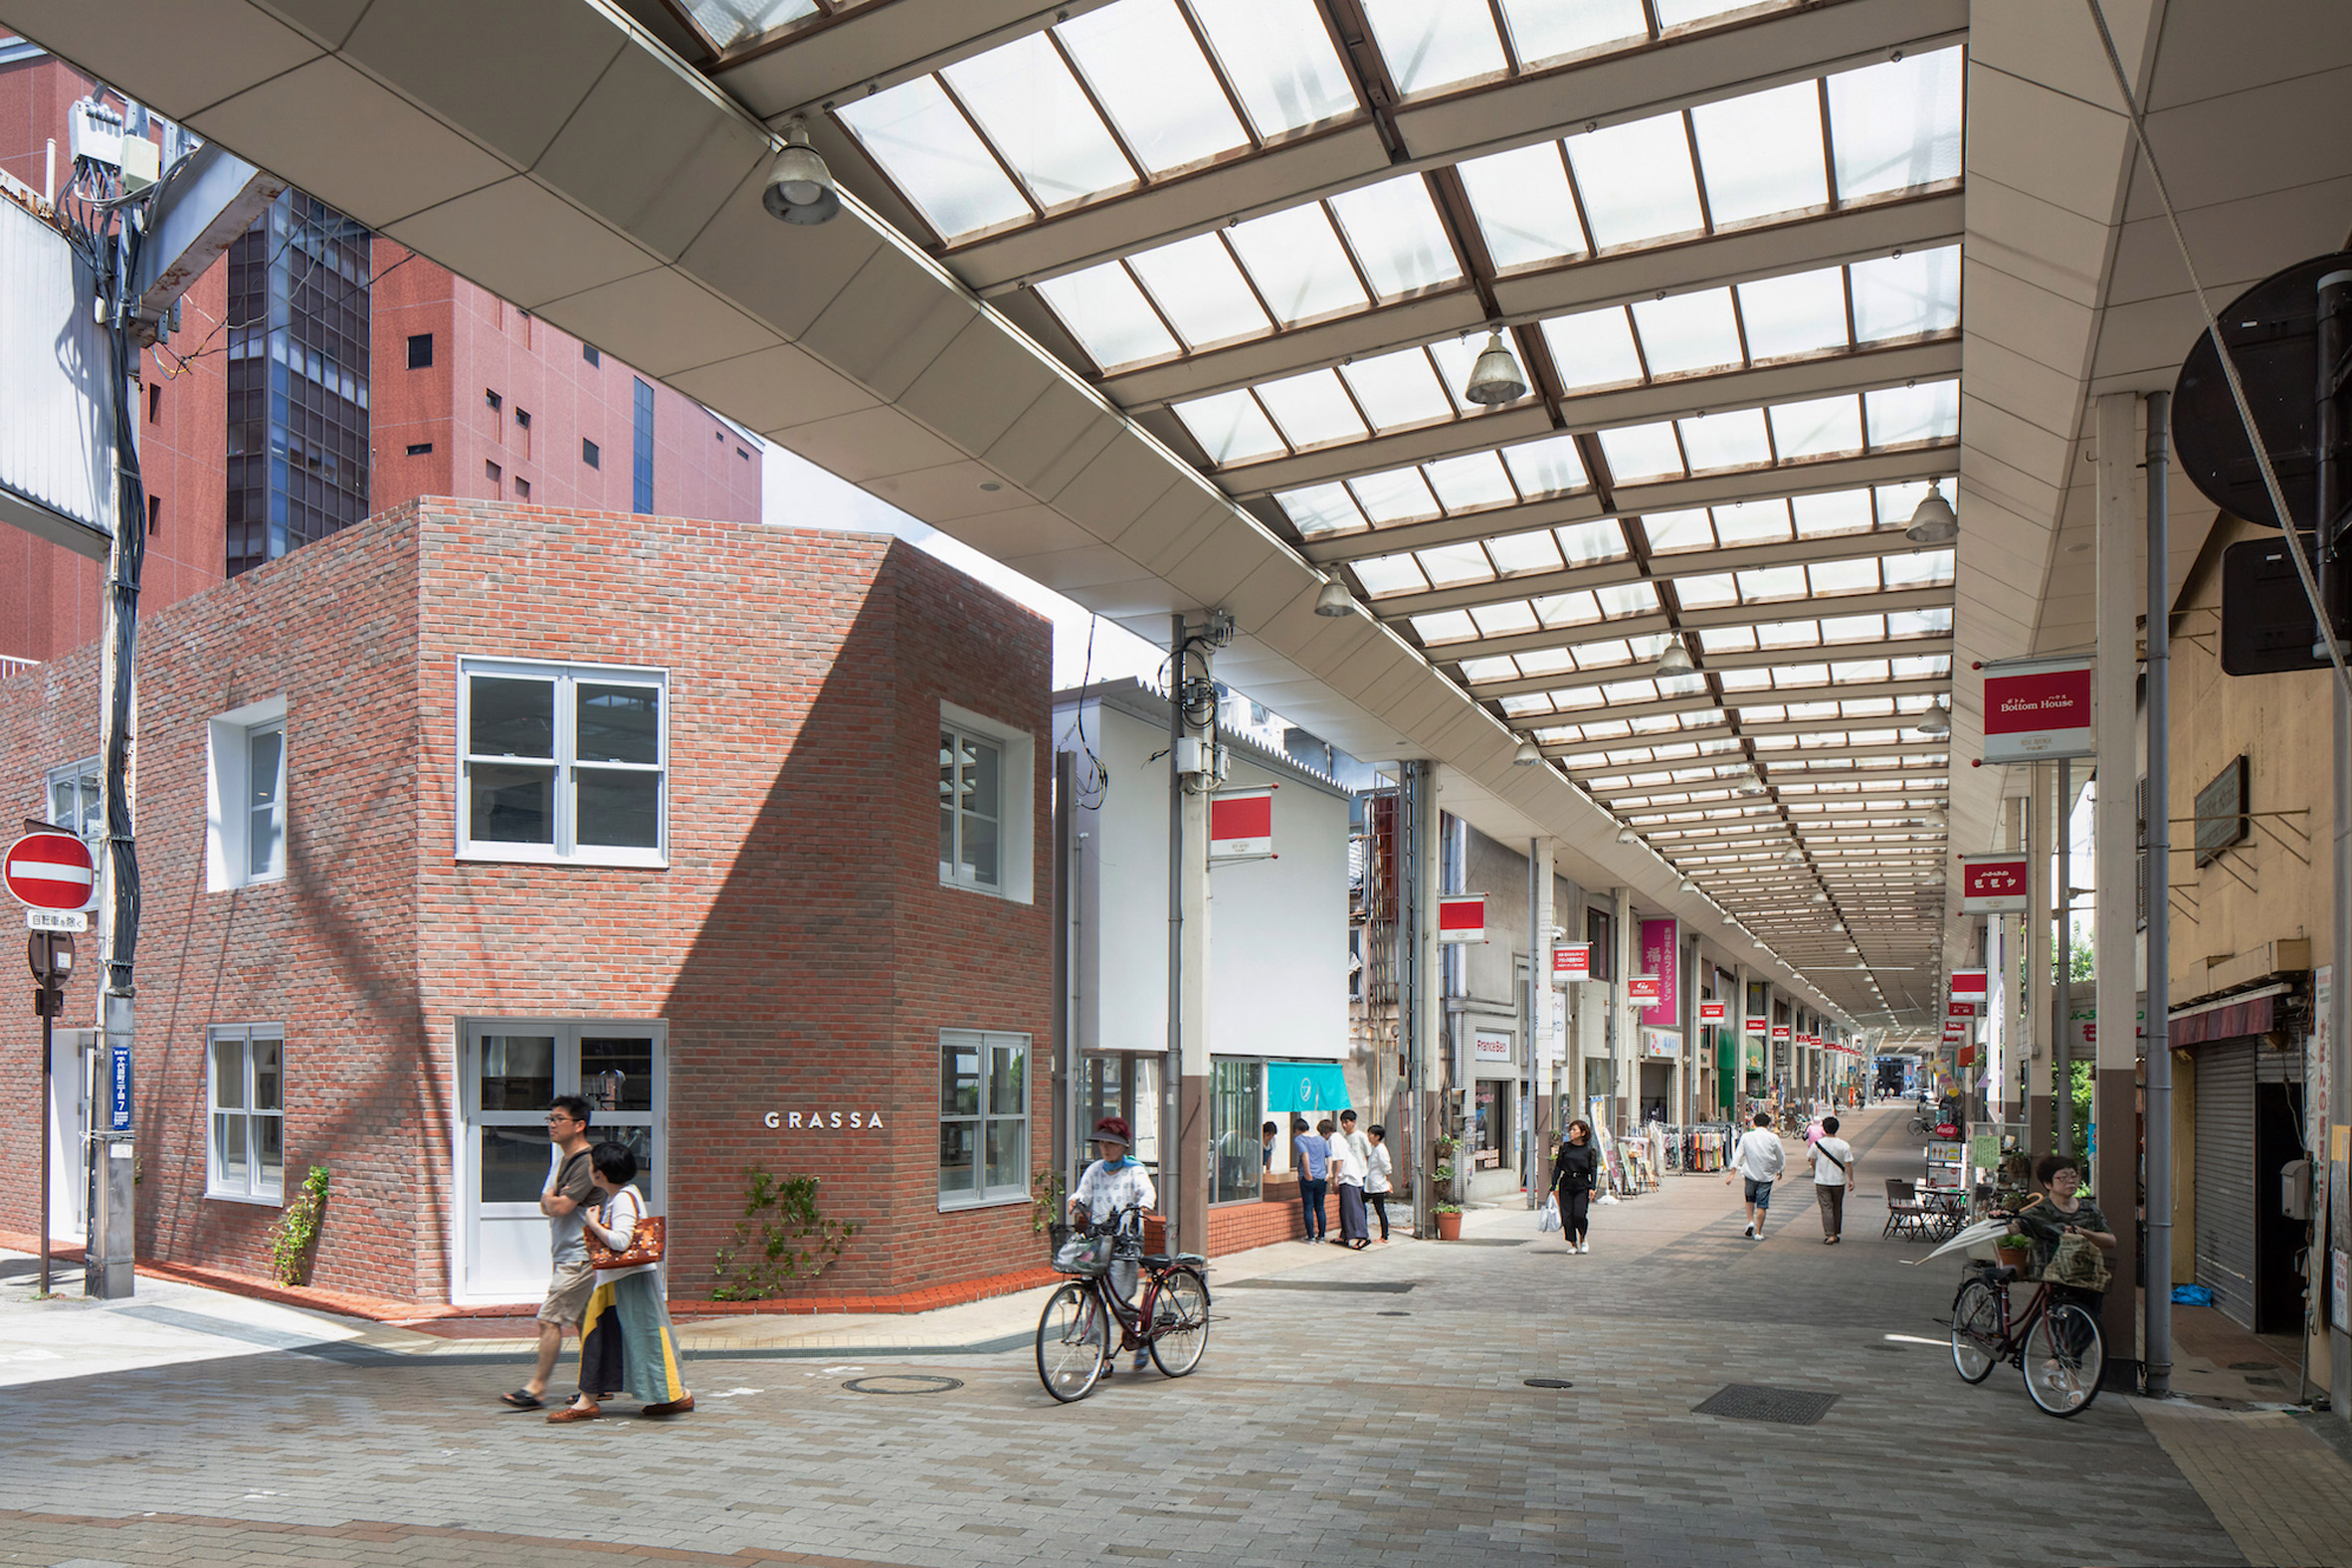 Shopping street with brick buildings in Japan